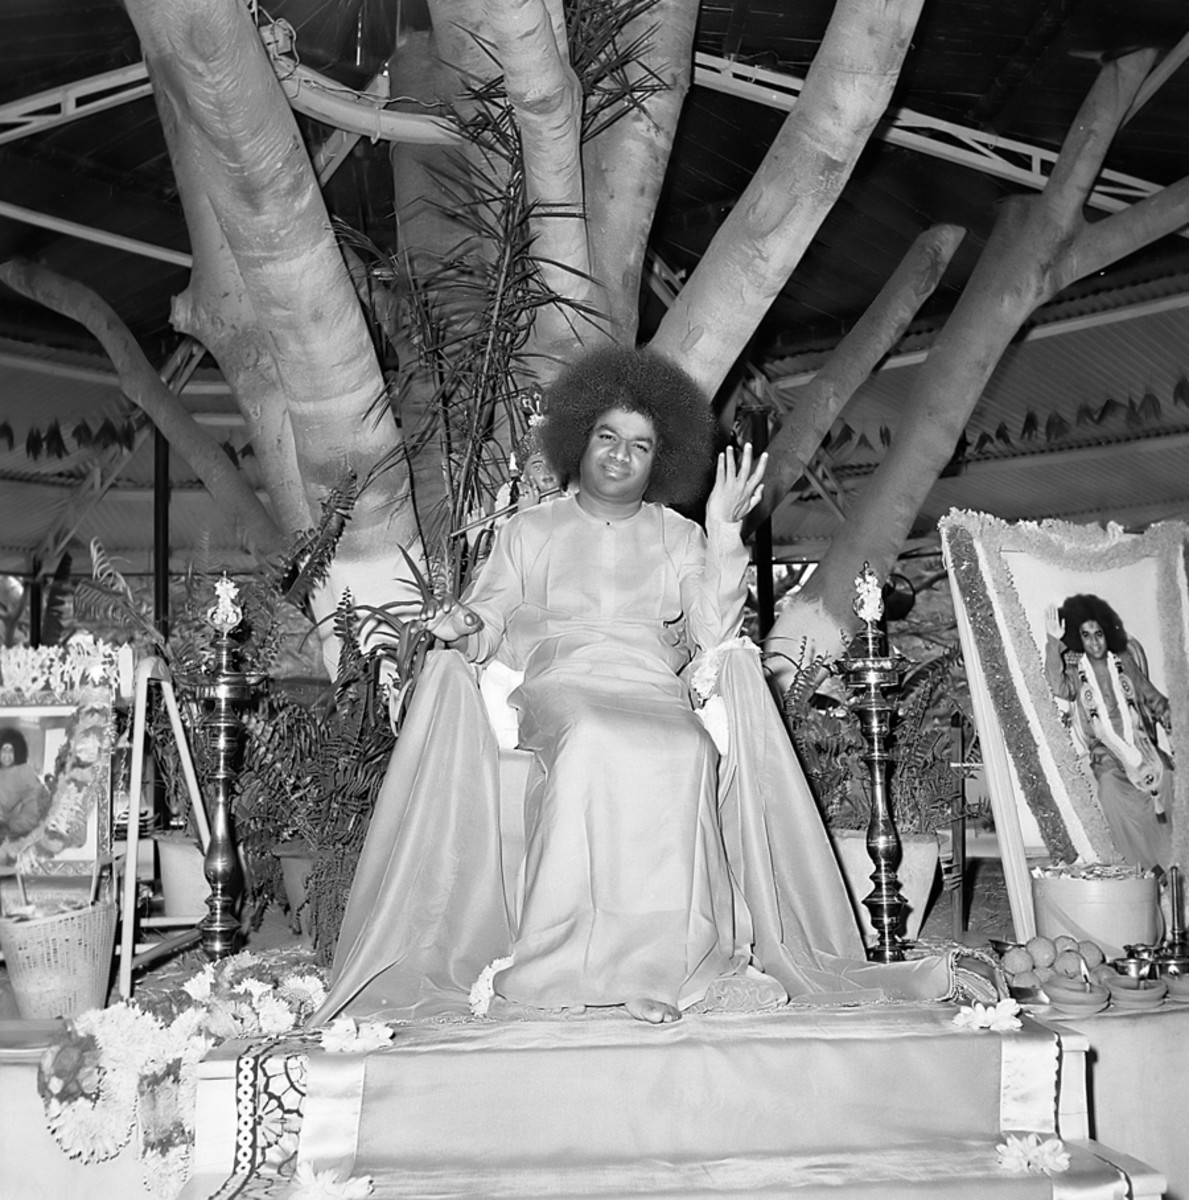 Sri Sathya Sai Baba at His Brindavan residence ( Bangalore) in the 1960s